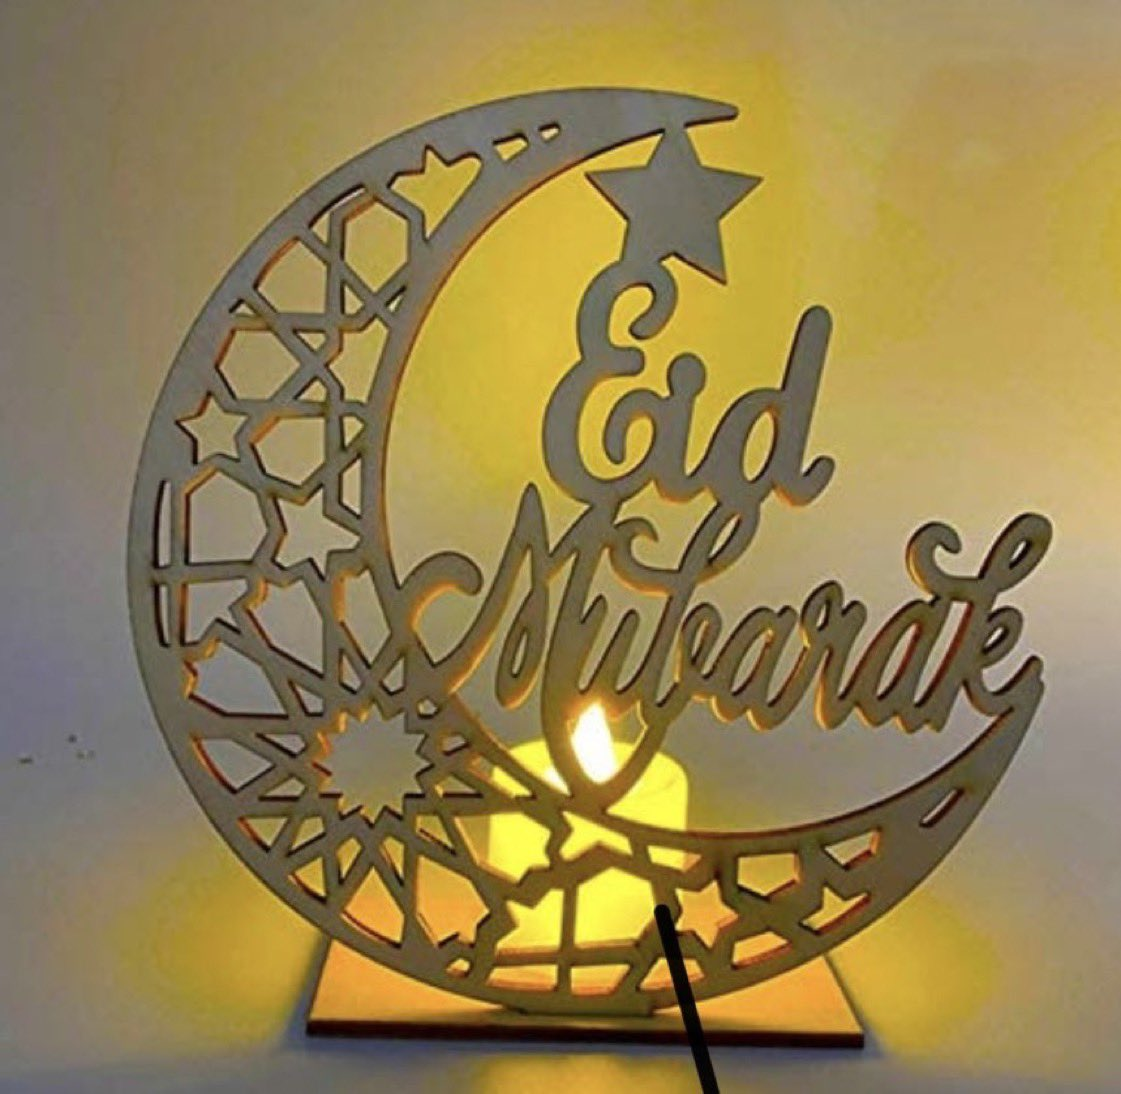 See Over 100 #EidMubarak And Happy Sallah Messages For Friends, Family